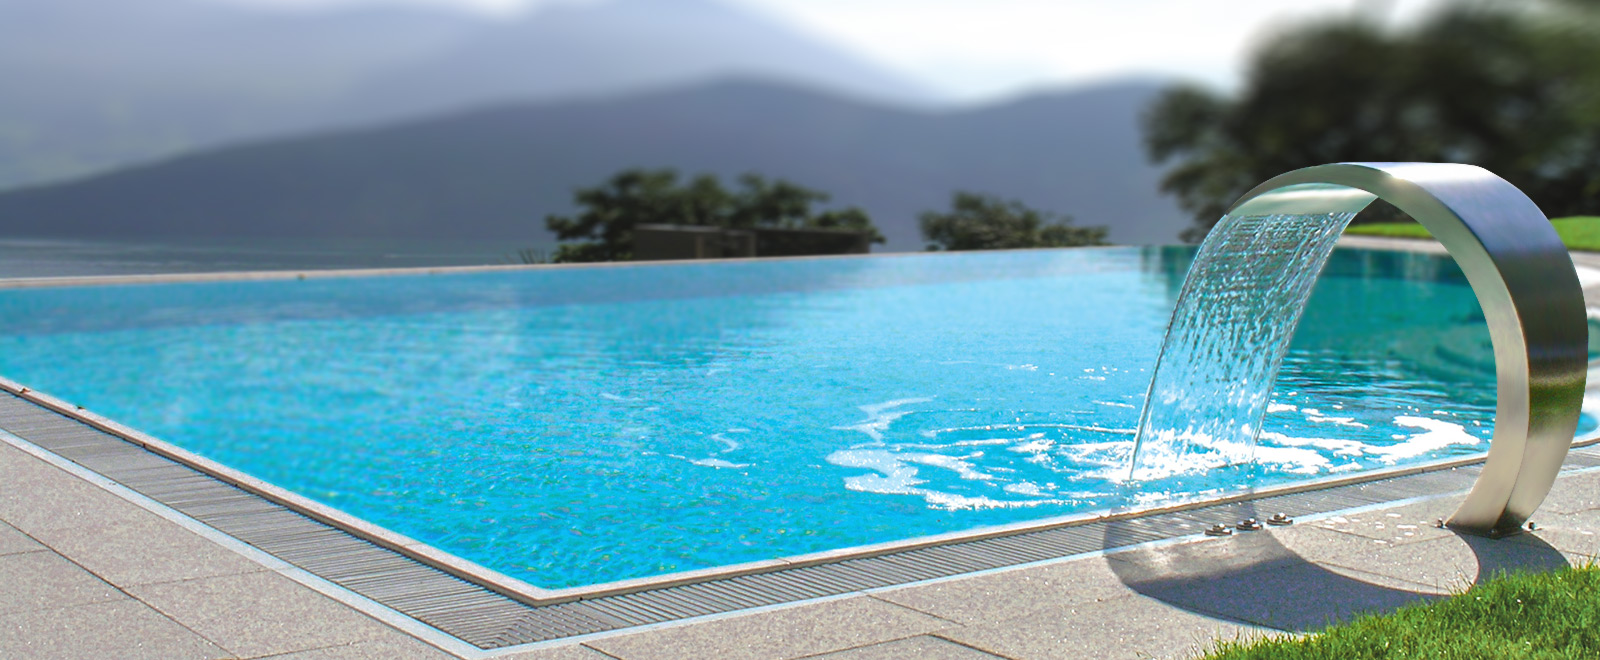 why fiberglass pool is better than concrete